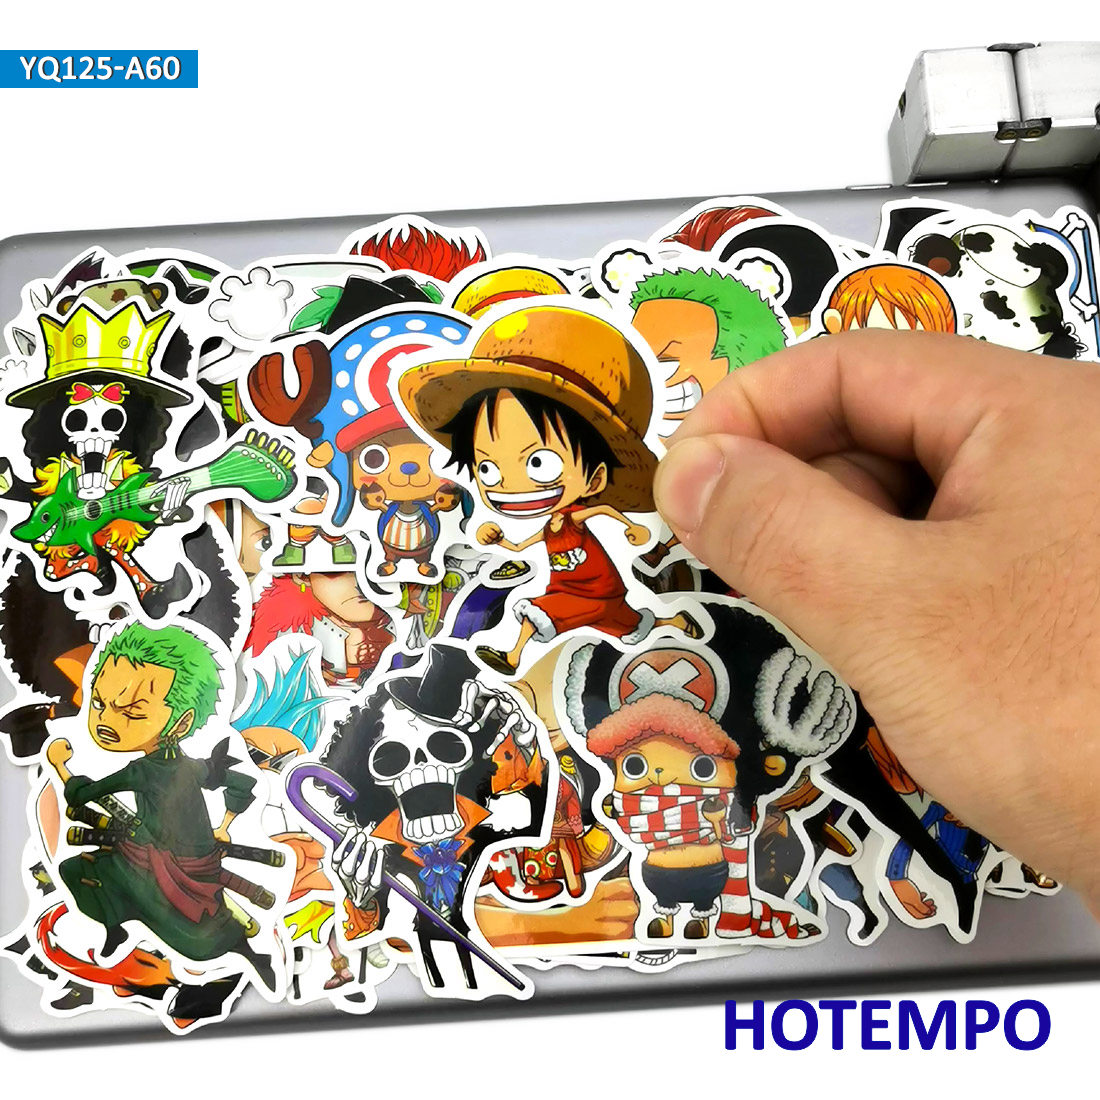 60pcs Japan TV Cartoon One Piece Luffy Zoro Nami Chopper Anime Stickers For Kids Mobile Phone Laptop Luggage Waterproof Stickers